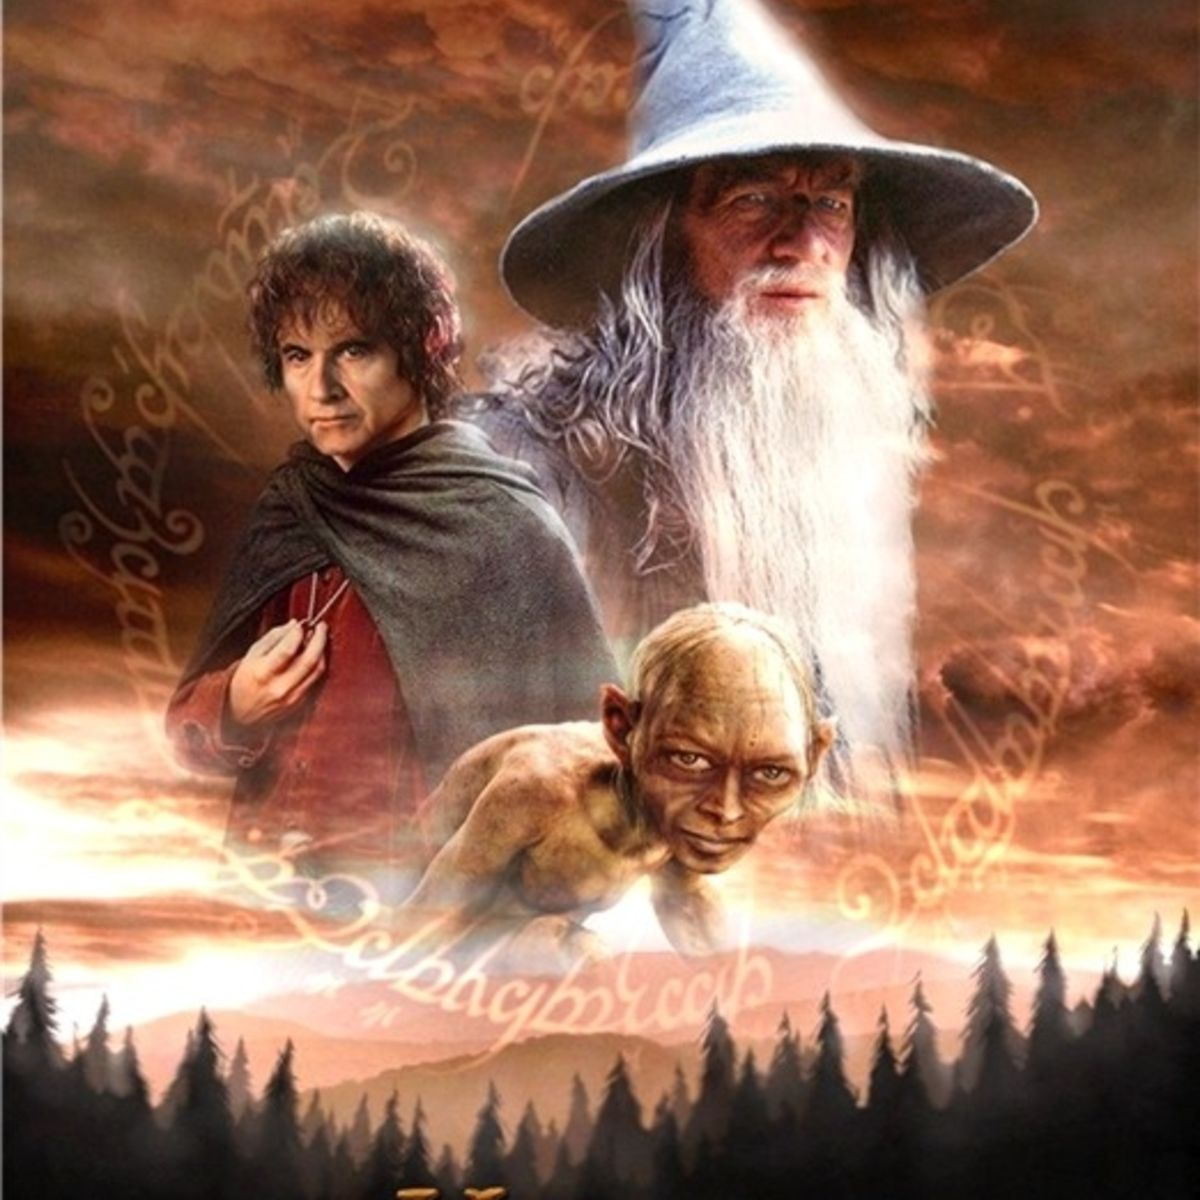 hobbit-movie_poster.jpg